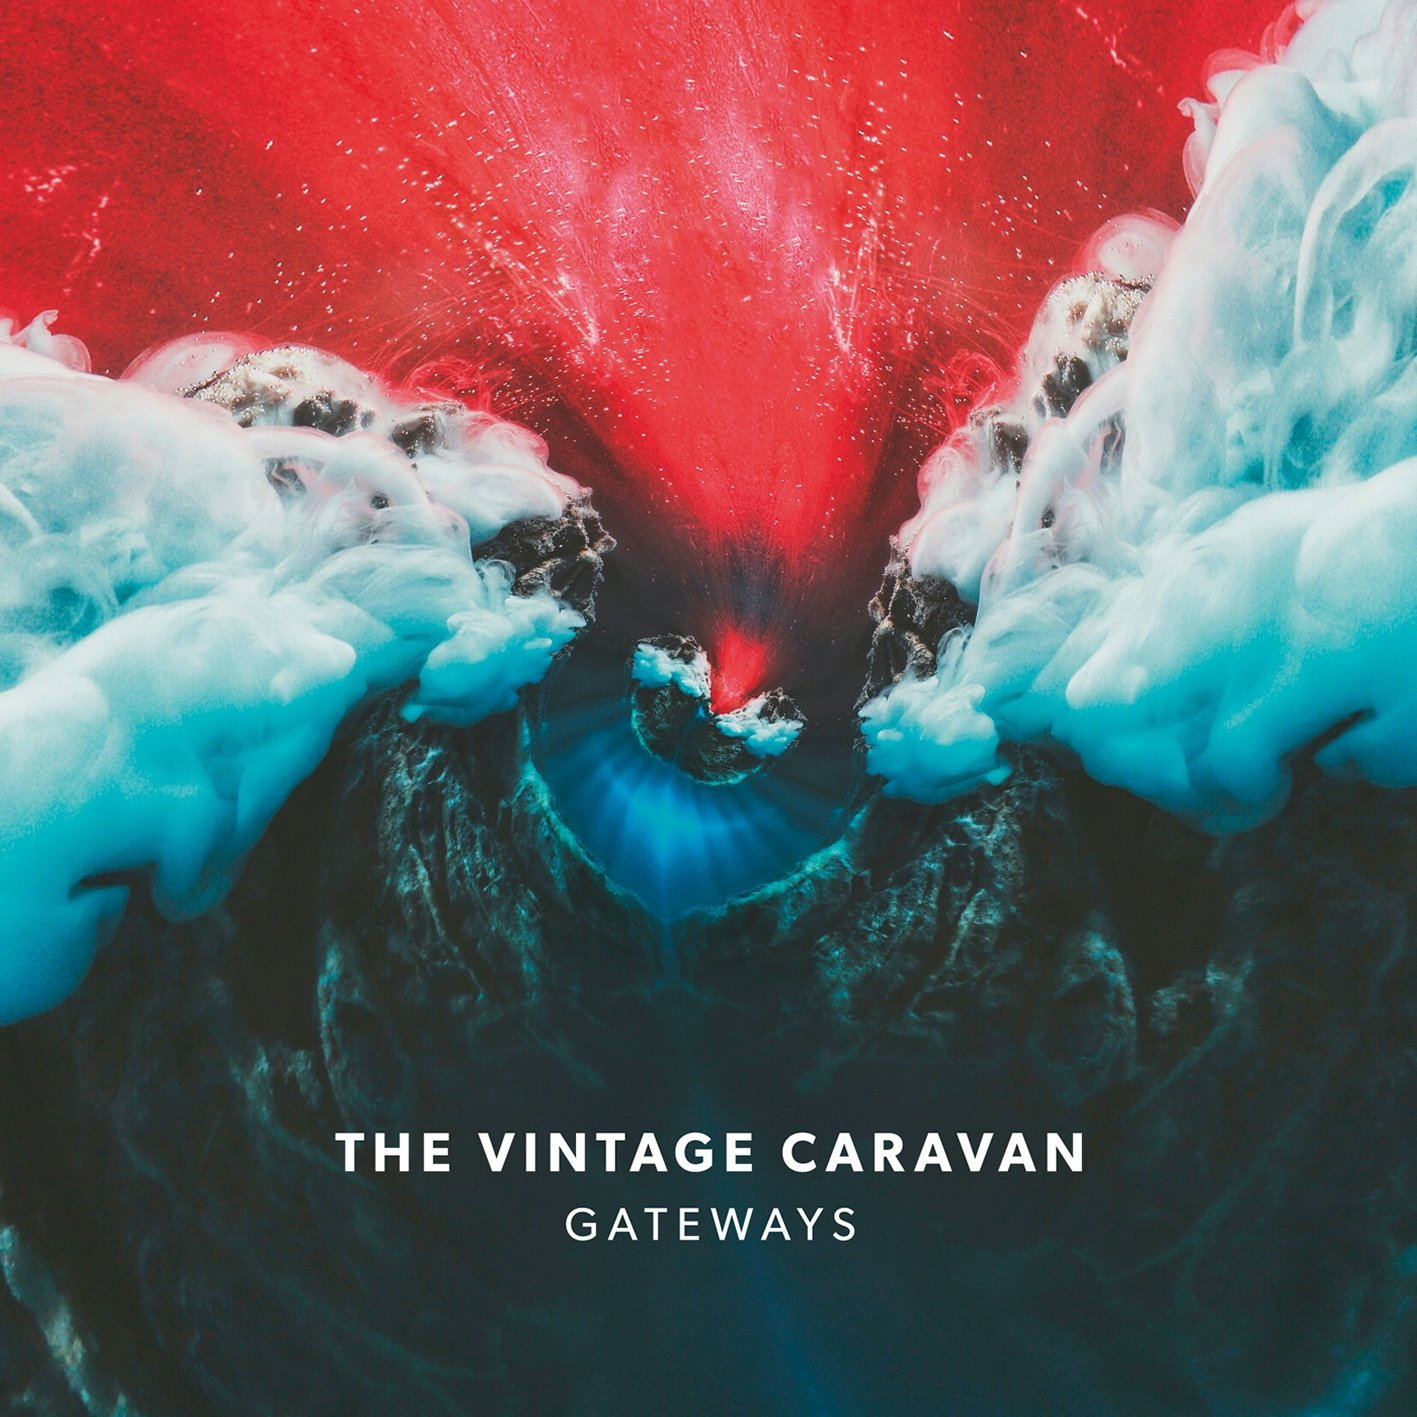 The Vintage Caravan - Gateways - Artwork